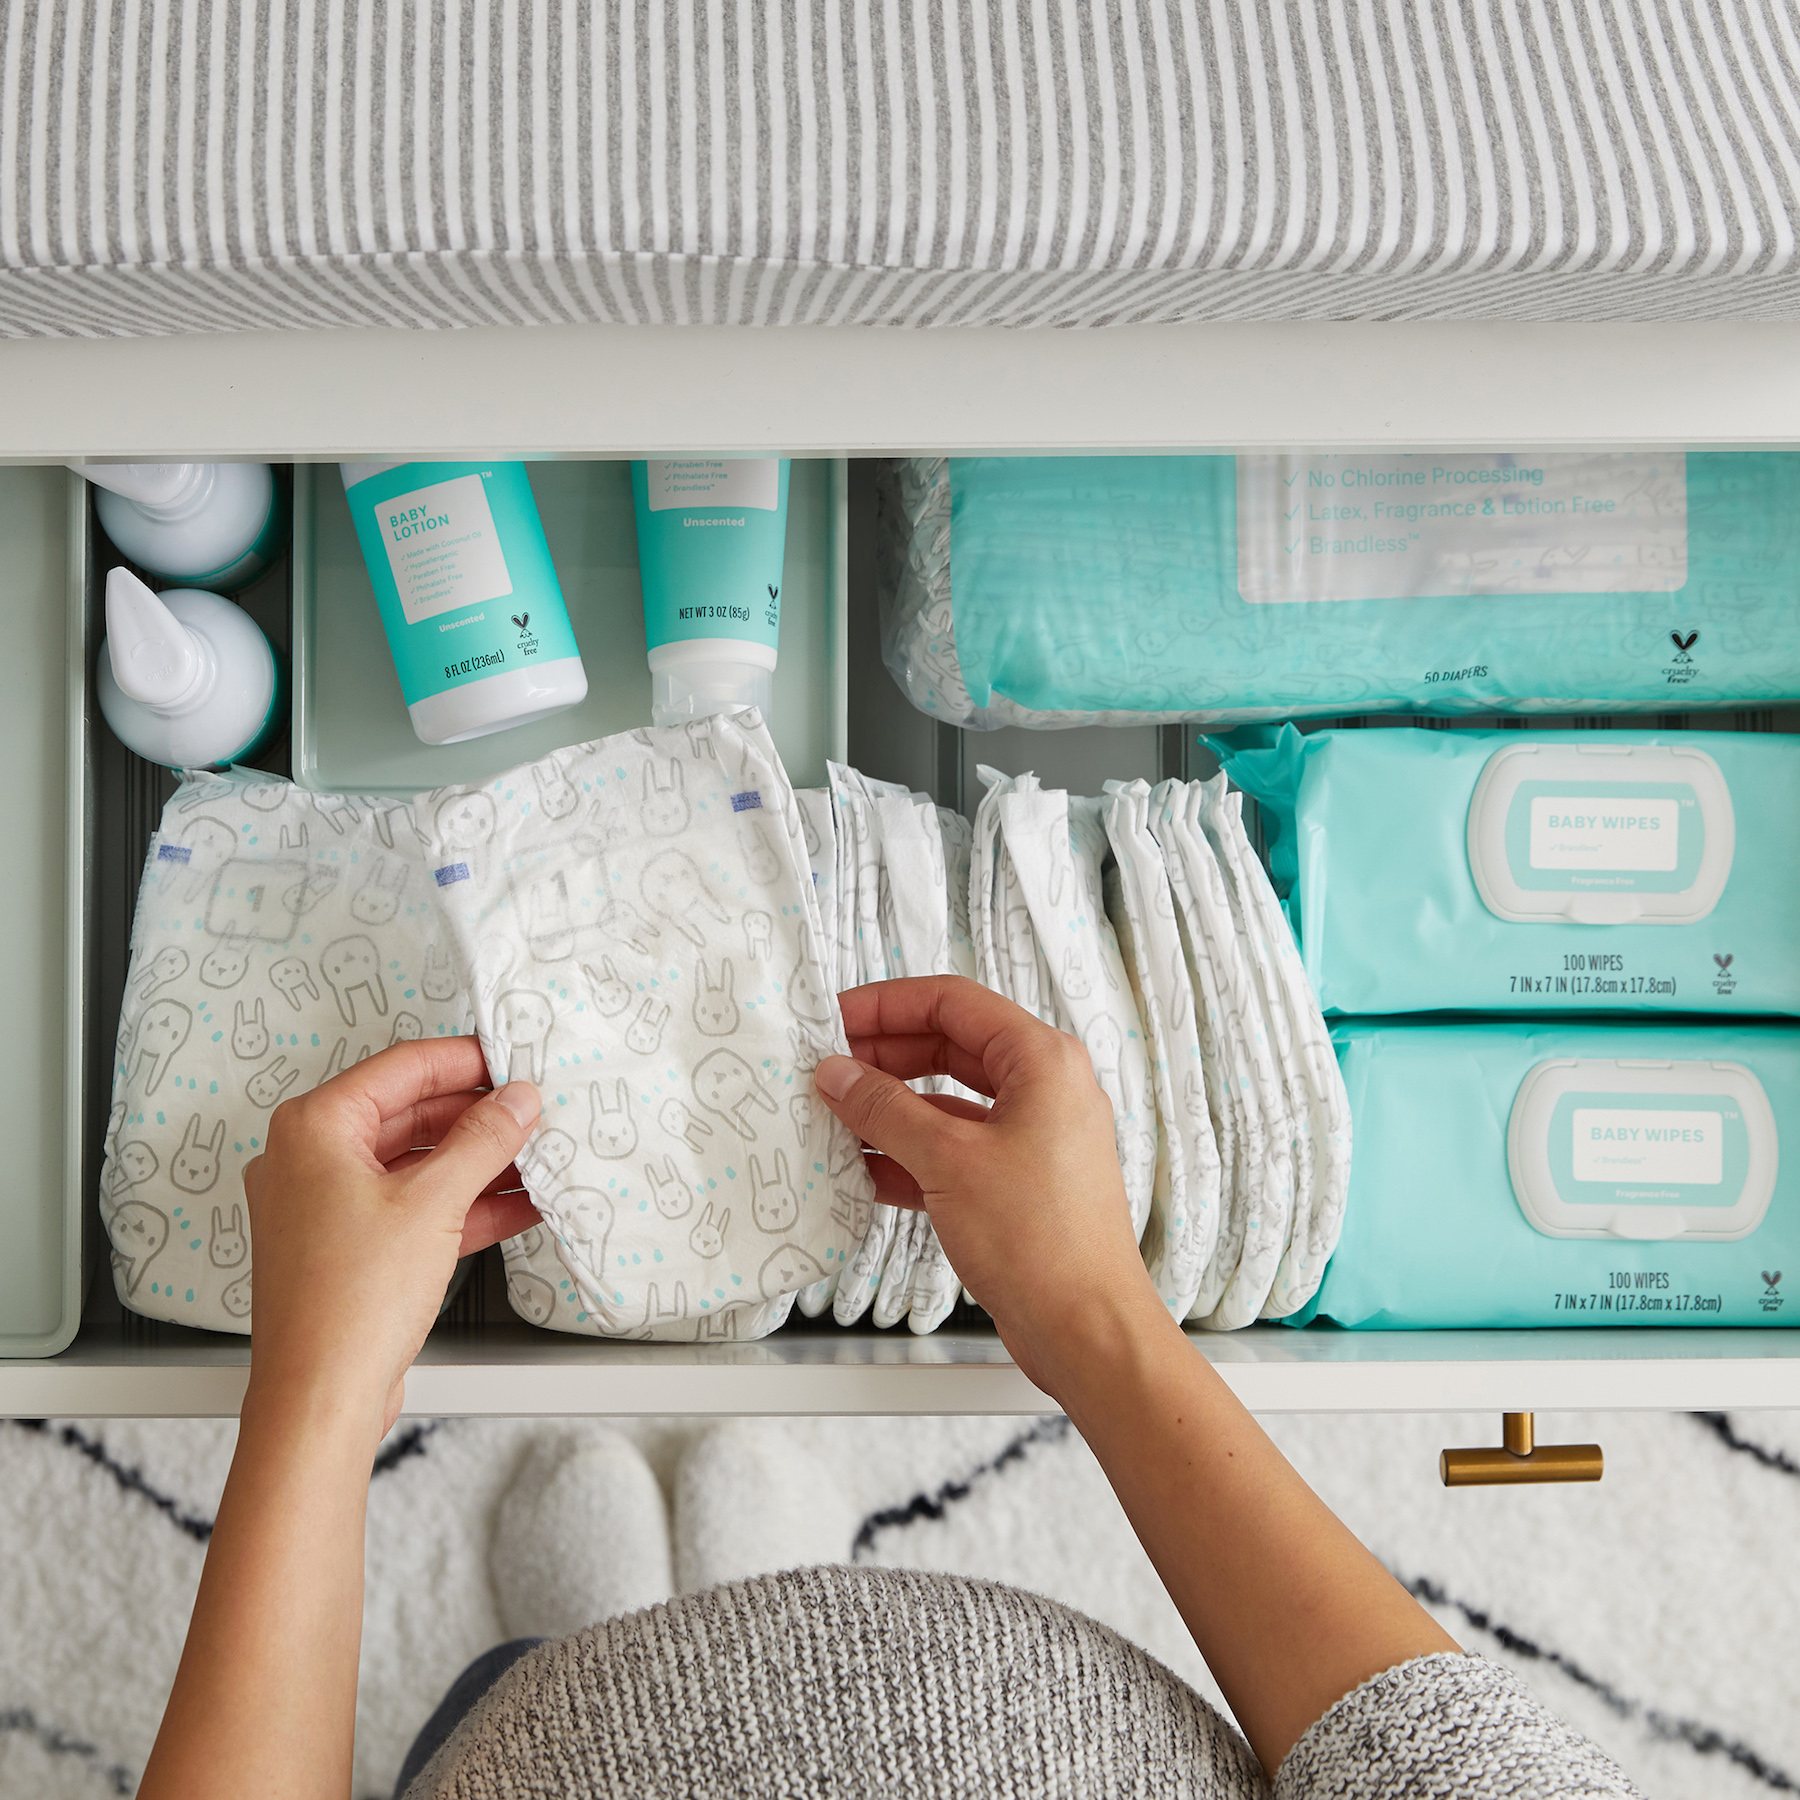 Brandless Eco Friendly Diapers in Drawer